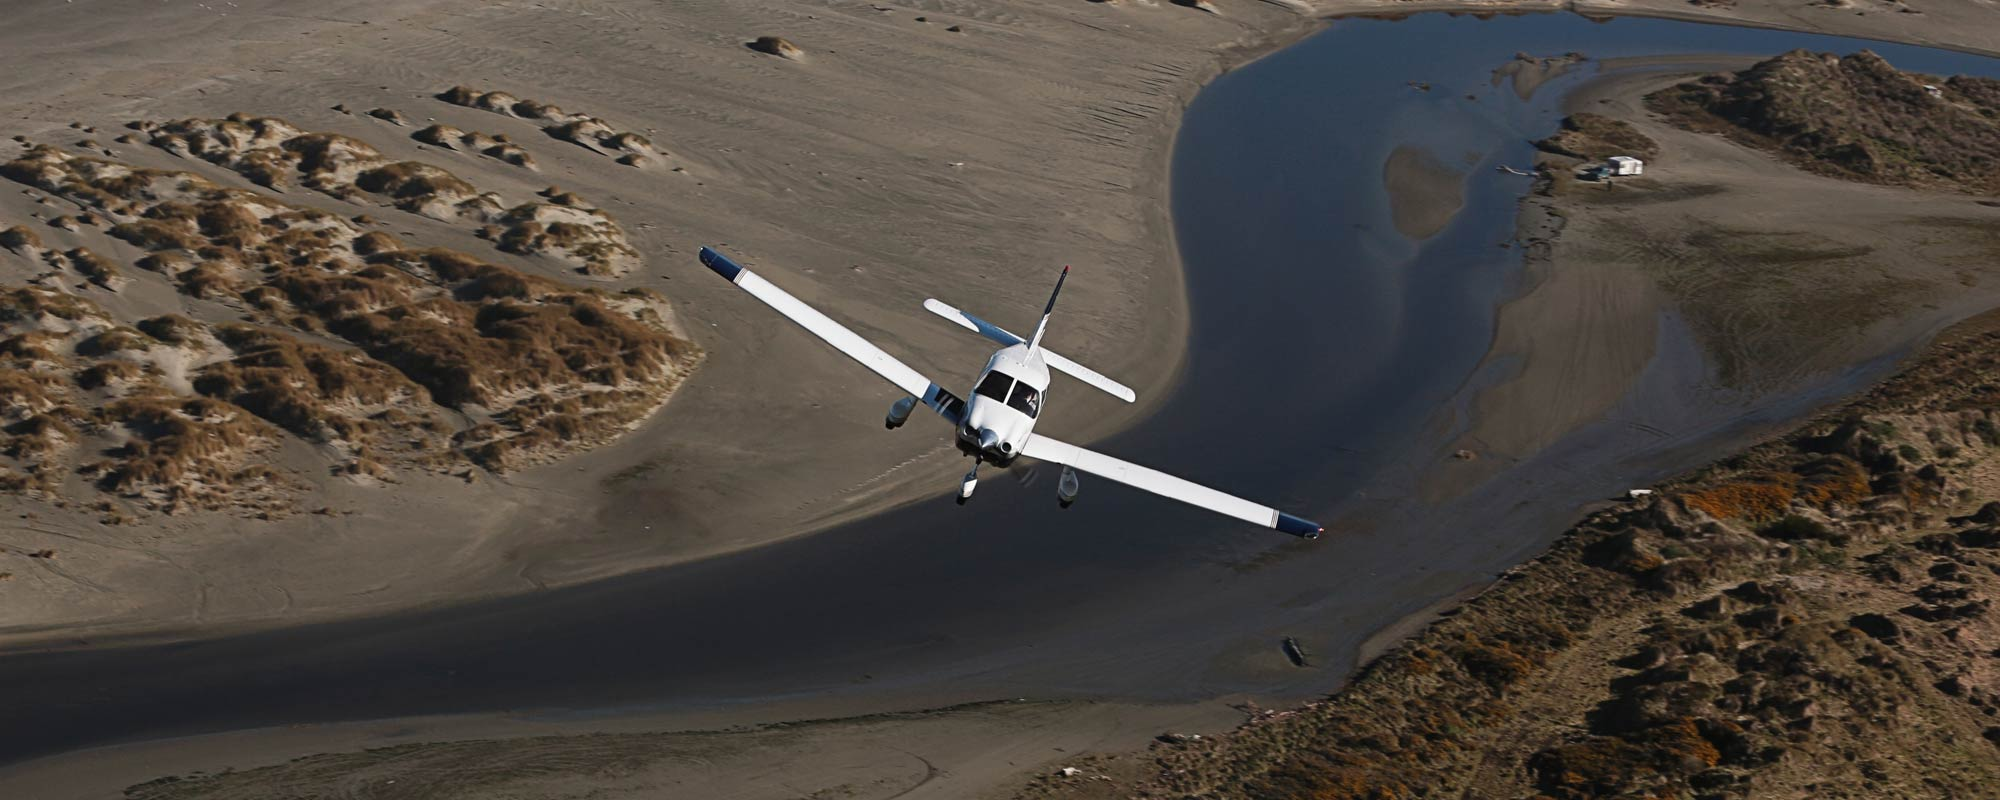 Private Pilot License Ppl Nz Southern Wings Airplane Wing Parts Theory Learn To Fly For Pleasure And Leisure